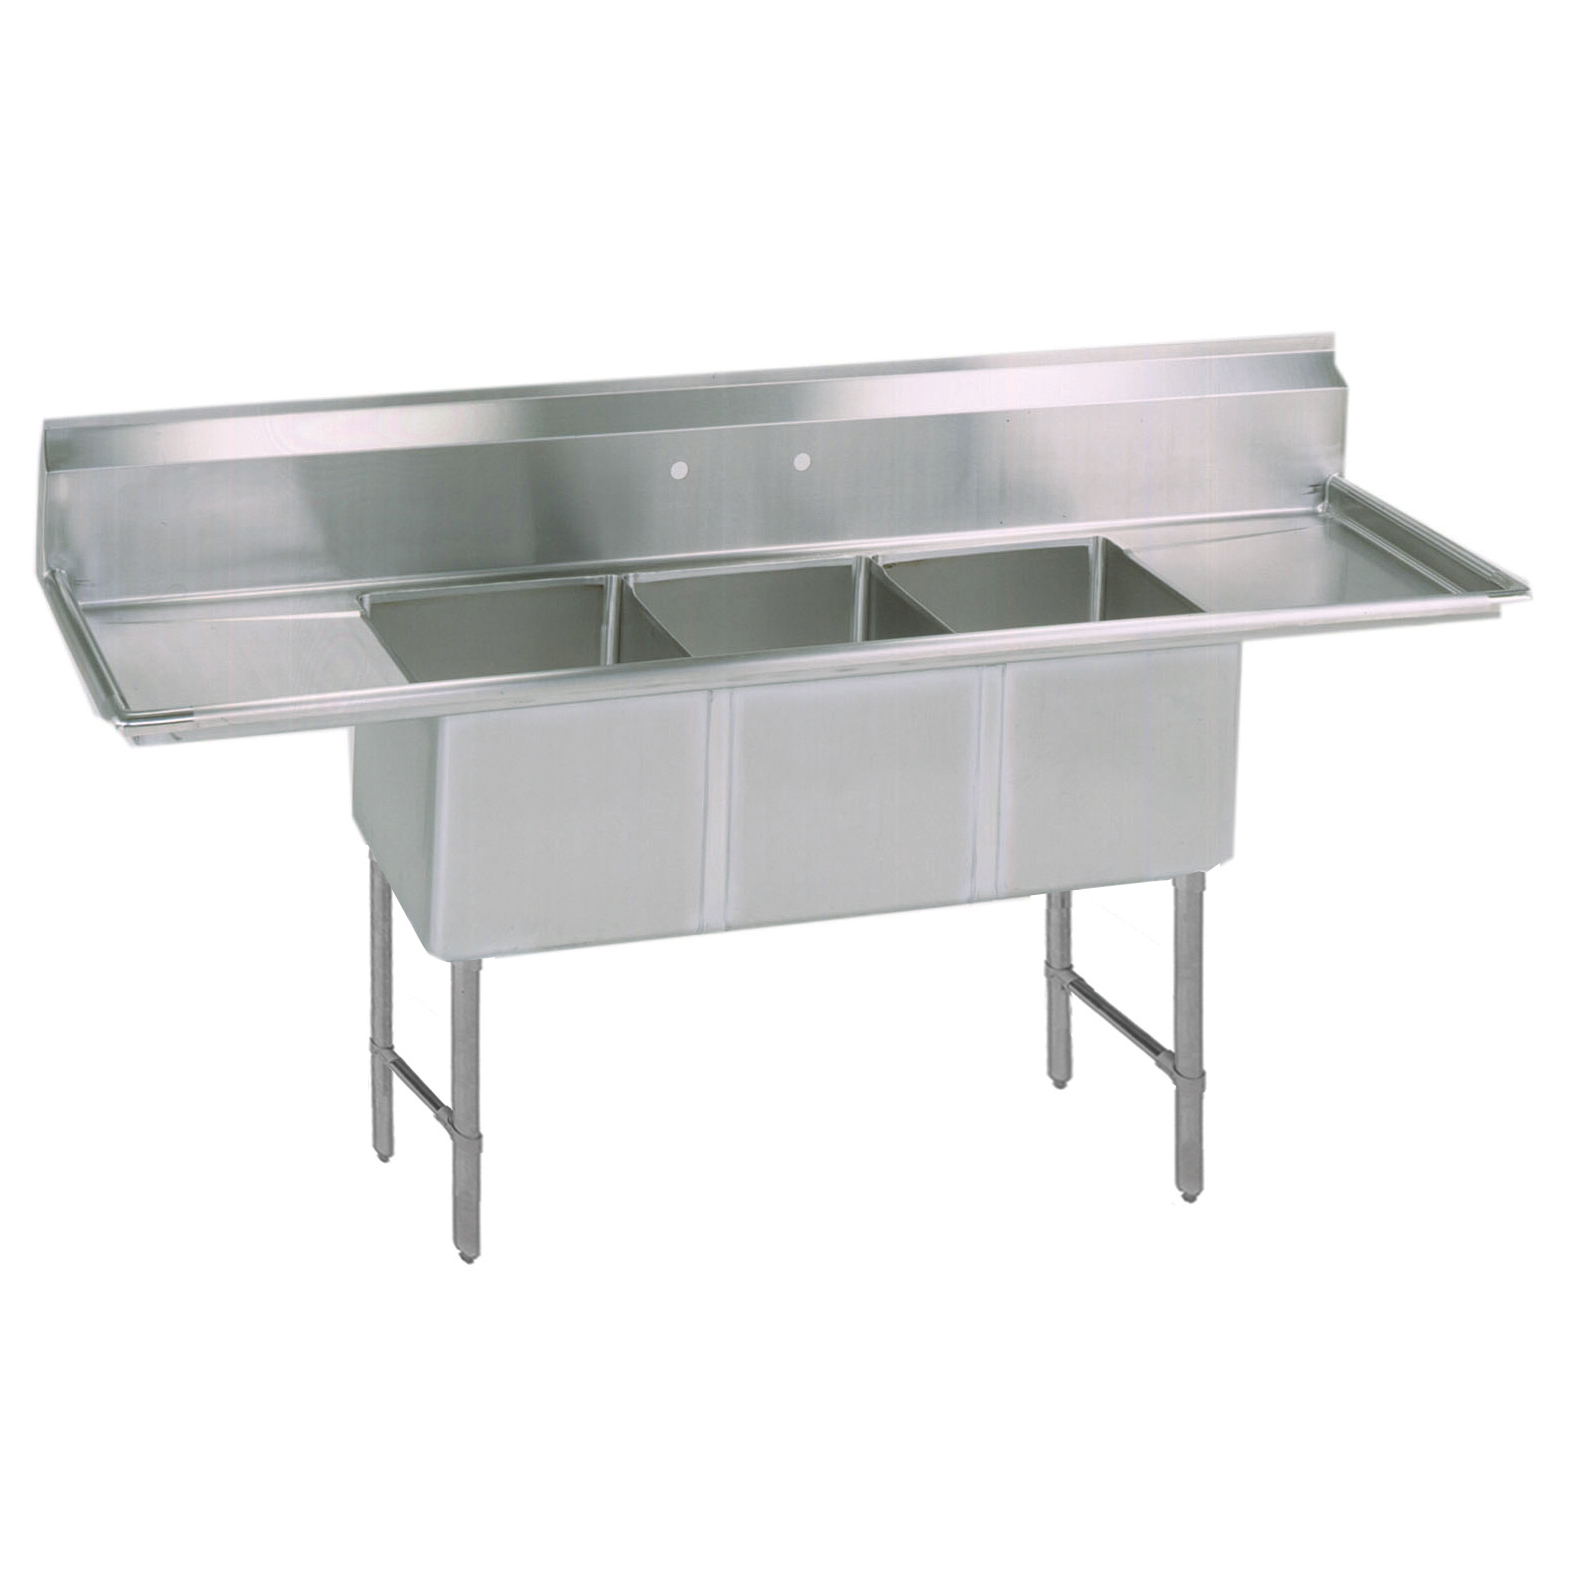 BK Resources BKS-3-1620-12-18TS sink, (3) three compartment